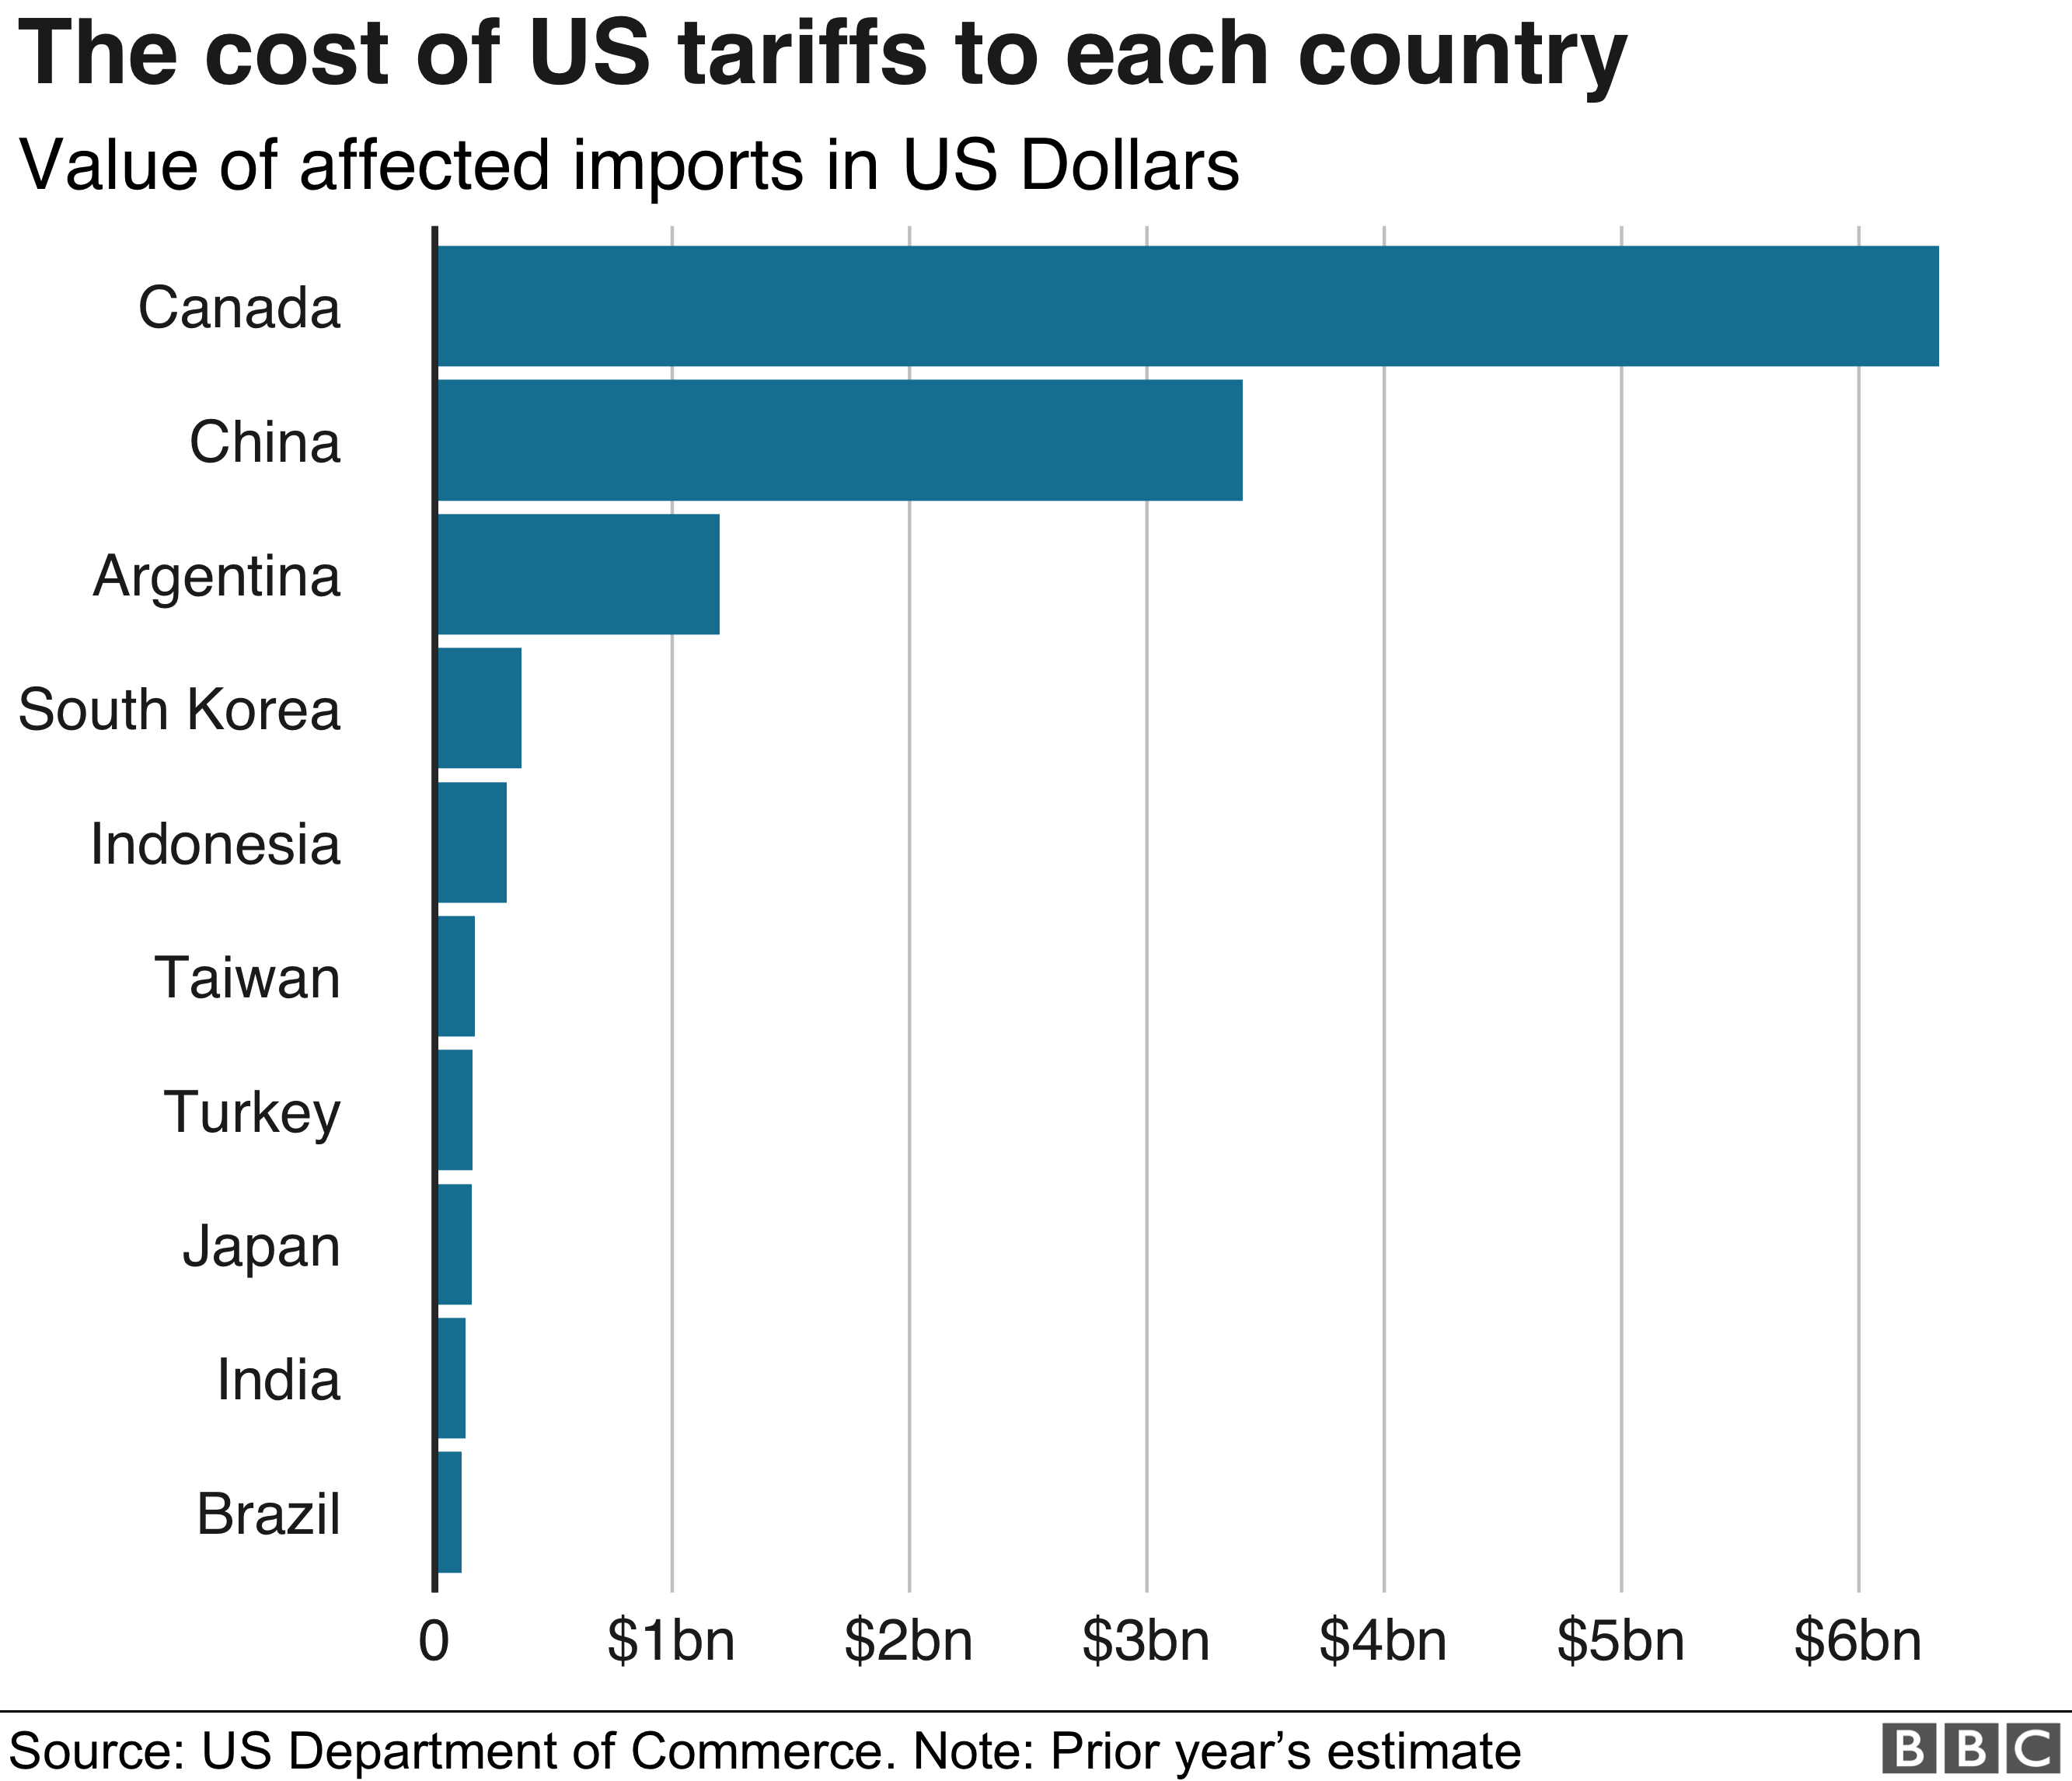 Donald Trump V The World Us Tariffs In Four Charts Bbc News When Was Aluminum Wiring Banned Canada Eight Months Later International Trade Commission Found Canadas Aircraft Industry Did Not Harm Businesses And 300 Duties Against